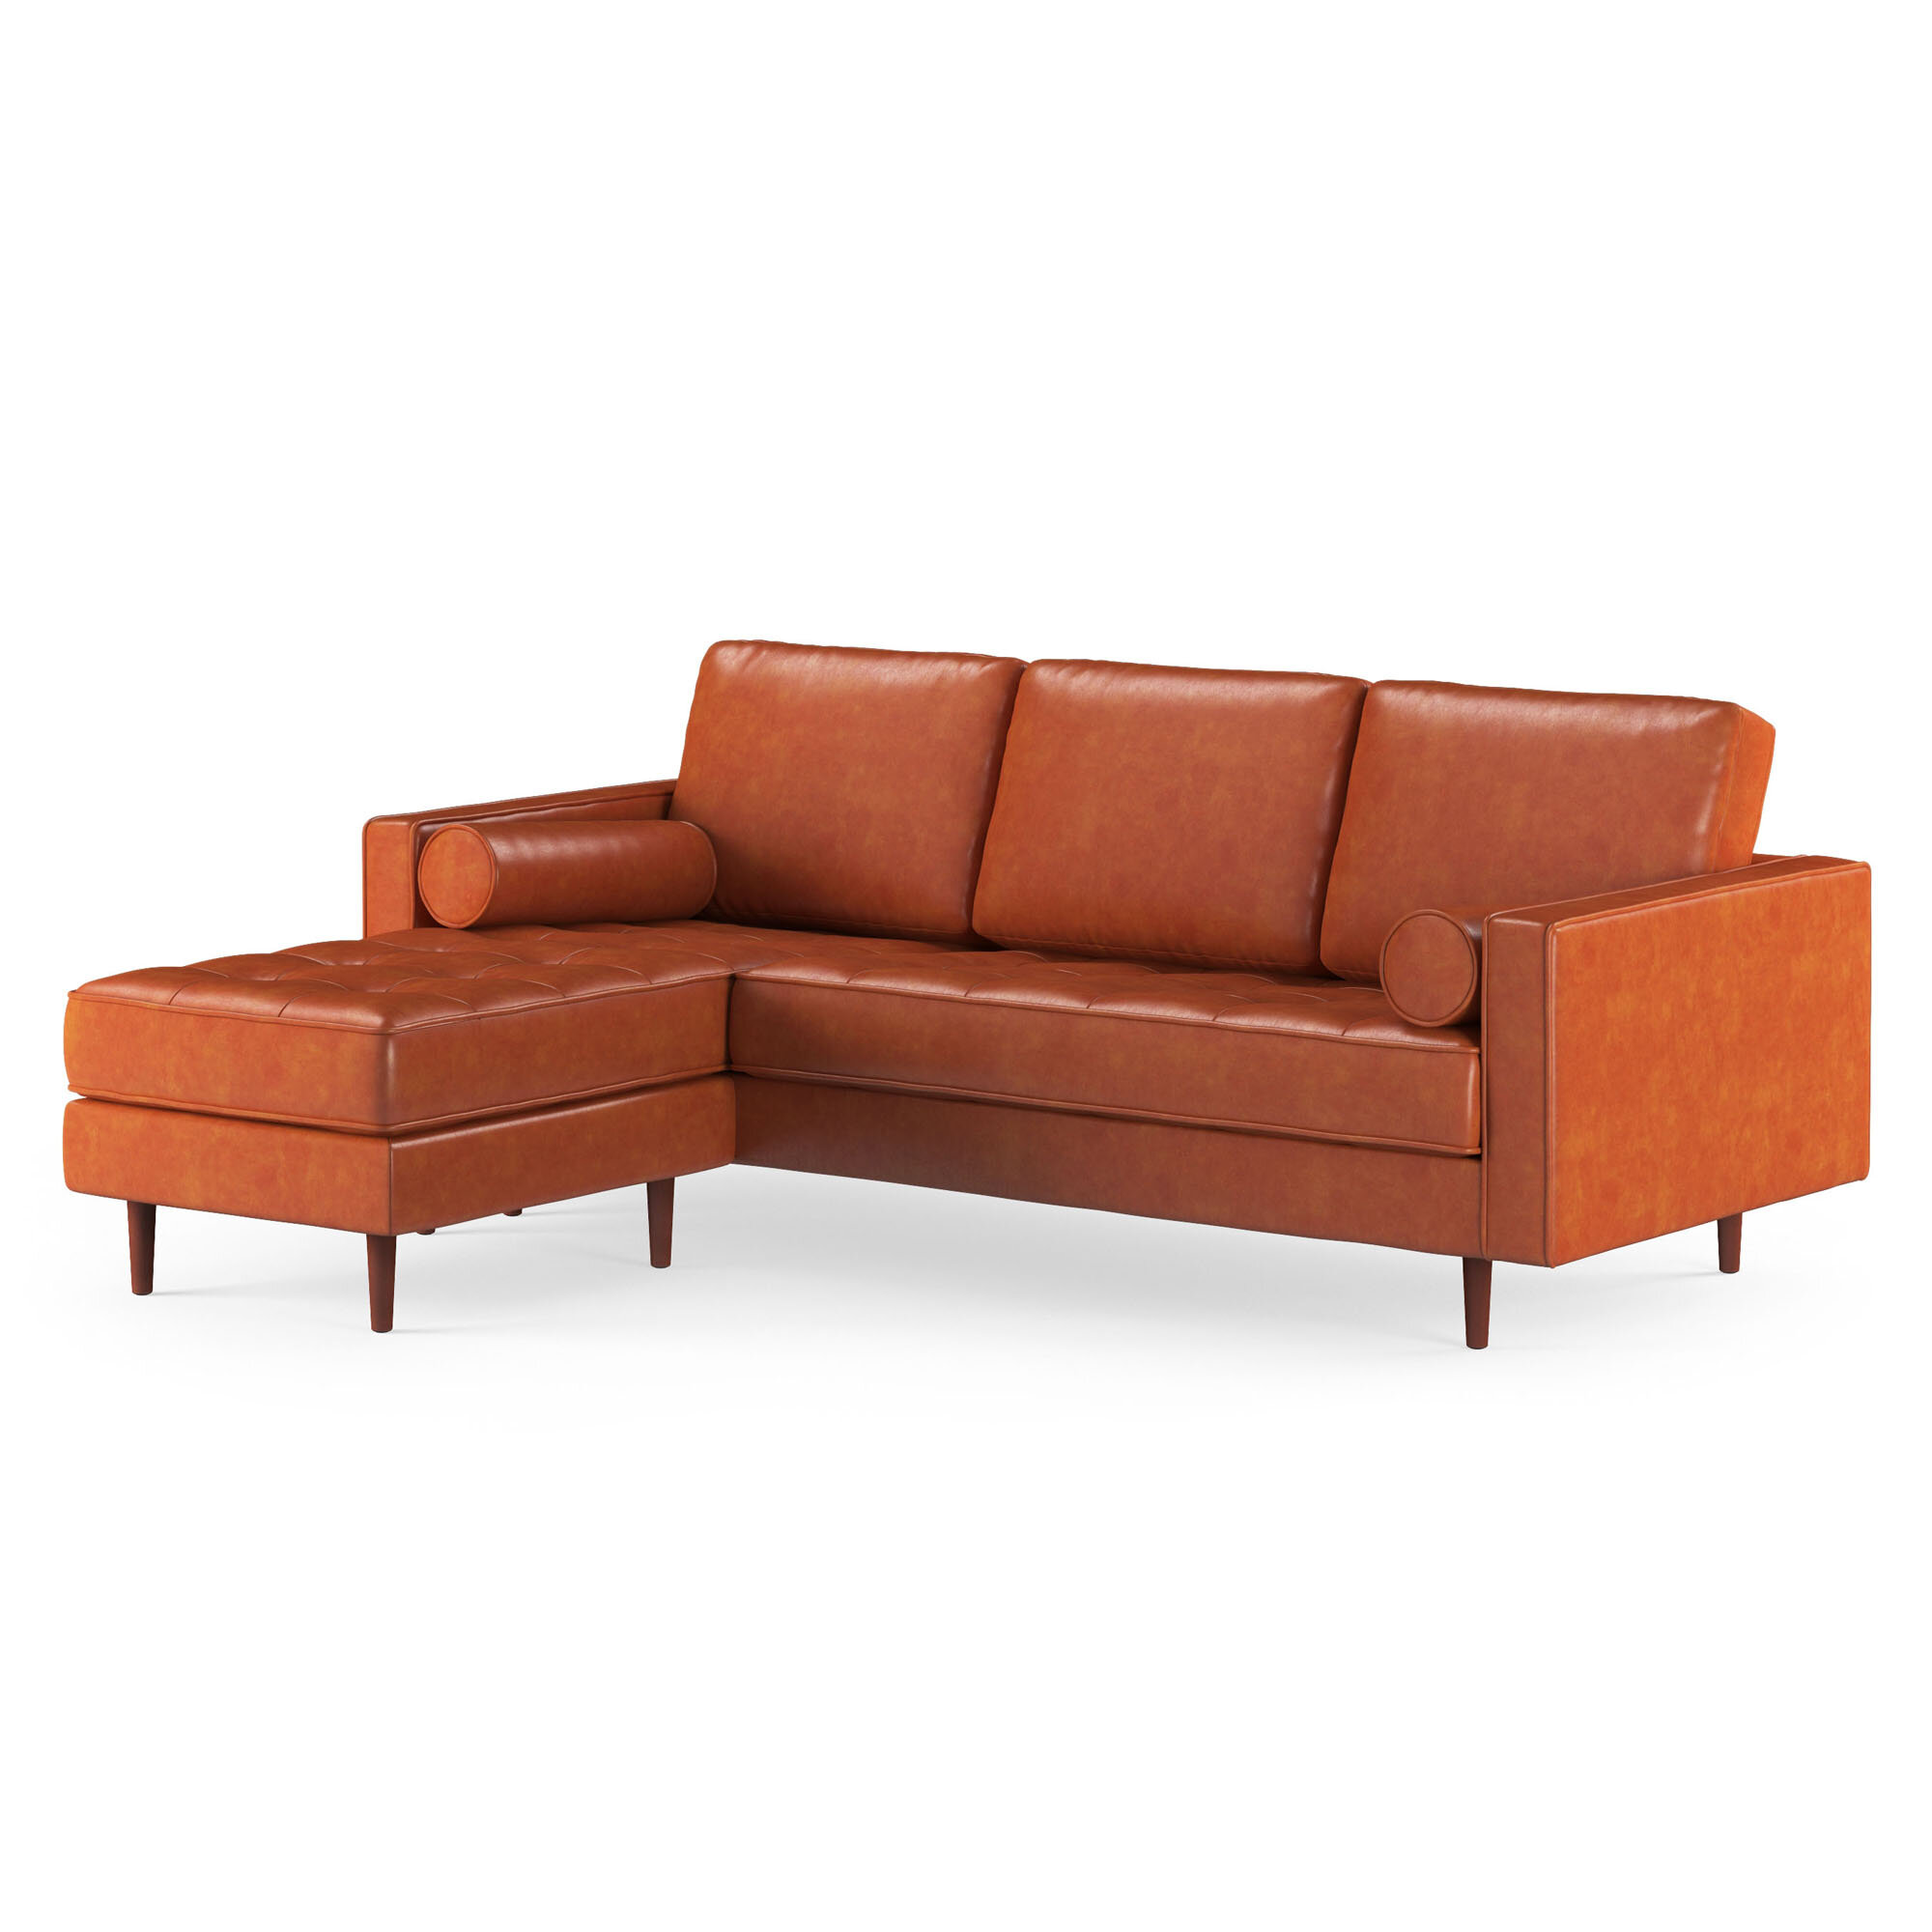 Fabulous Bombay Leather Reversible Modular Sectional With Ottoman Ibusinesslaw Wood Chair Design Ideas Ibusinesslaworg